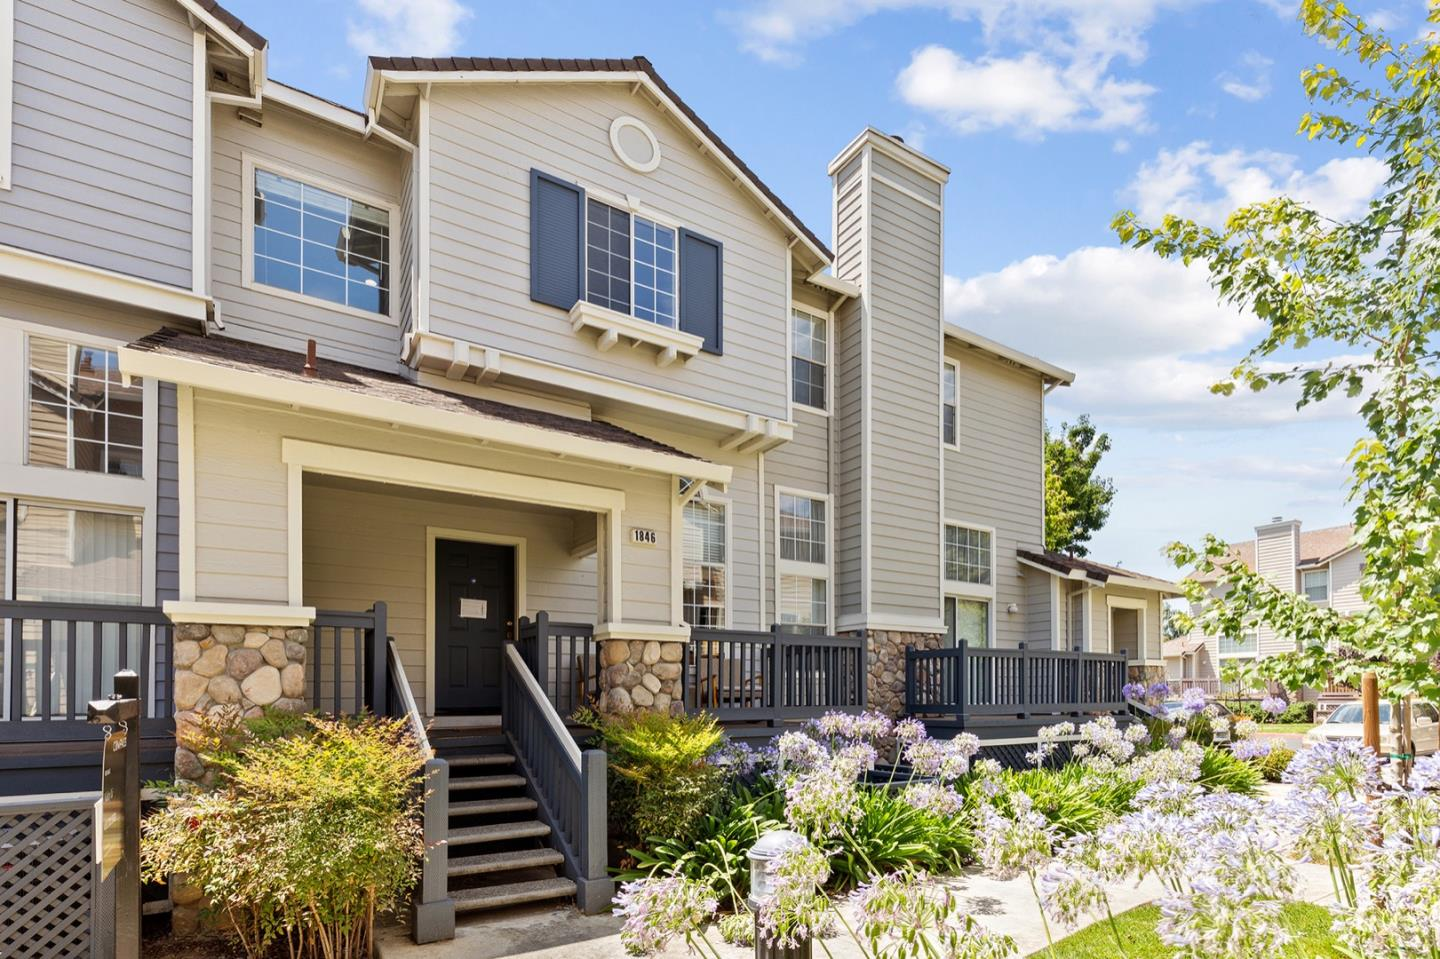 Charming 3beds,2.5baths Townhome nestled in the sought after California Northpointe Community in North San Jose. Bright open floor plan offers separate family room and living room with tiled fireplace and high ceiling. Gourmet Kitchen boasts quartz countertops, SS appliances, white cabinets, and recessed lights. Large master suite enjoys high ceiling and updated bath with double sinks and roomy stall shower. Central heat and AC, dual pane windows, inside laundry, private fenced front patio, and attached two-car garage with car wash area.  Well-maintained community enjoys beautiful landscaping, swimming pool and spa. Conveniently located with walking distance to  H Mart, Ranch 99, City Sports, close to BART, park, and mall. Easy access to Hwy101/880/680. Visit https://www.1846bristolbay.com for details.